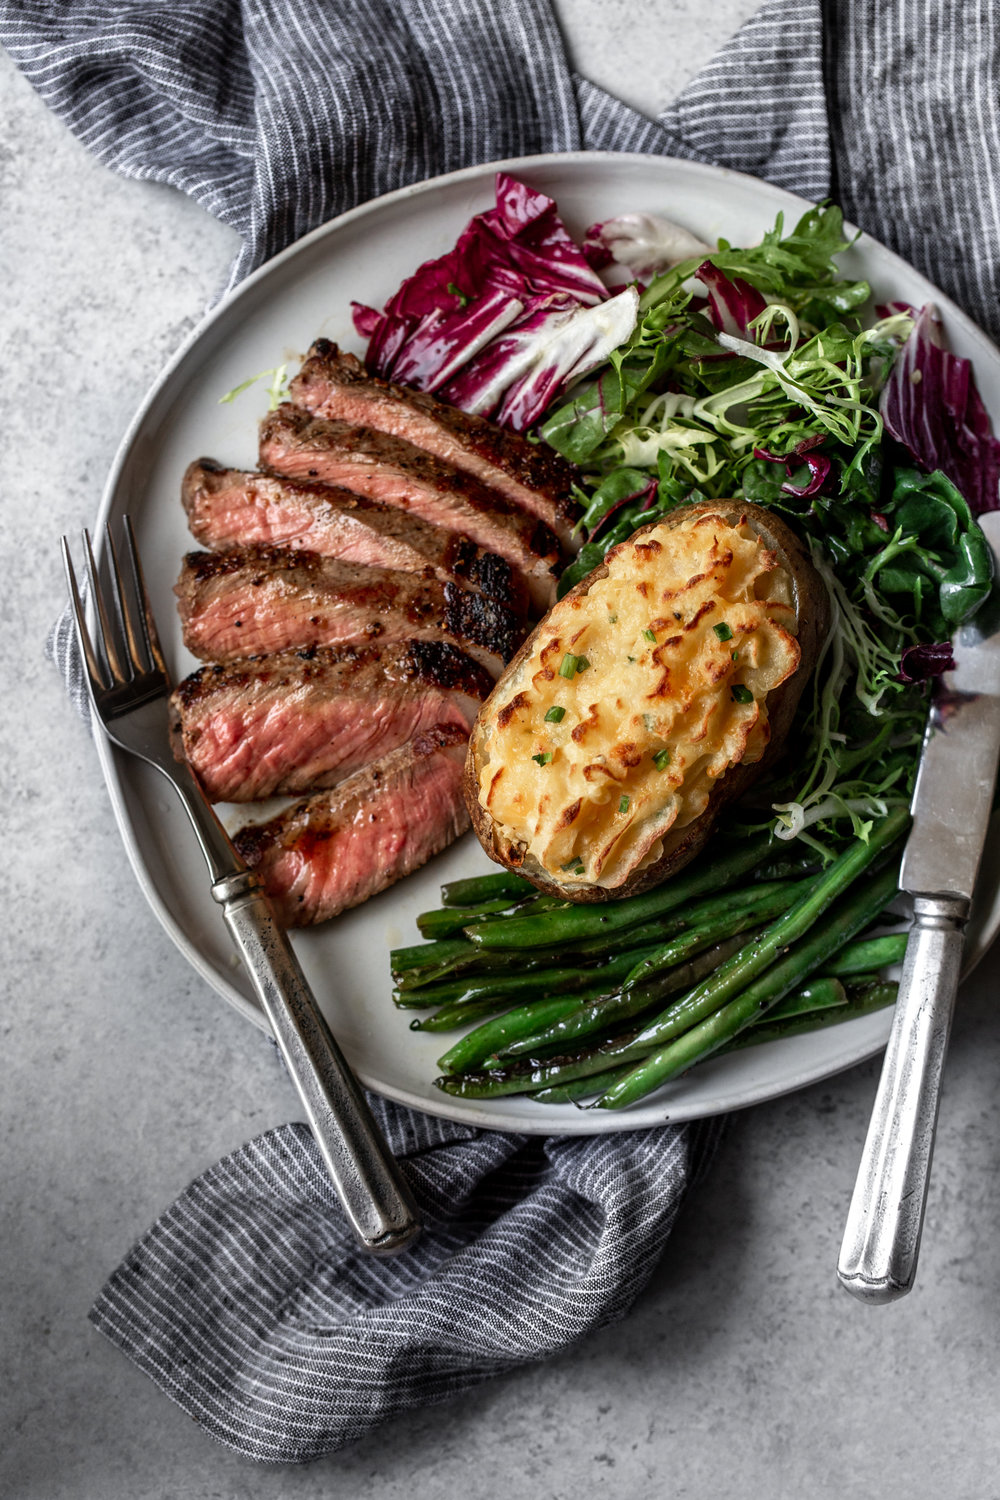 Cheesy Cheddar Twice Baked Potatoes recipe with seared steak from cooking with cocktail rings